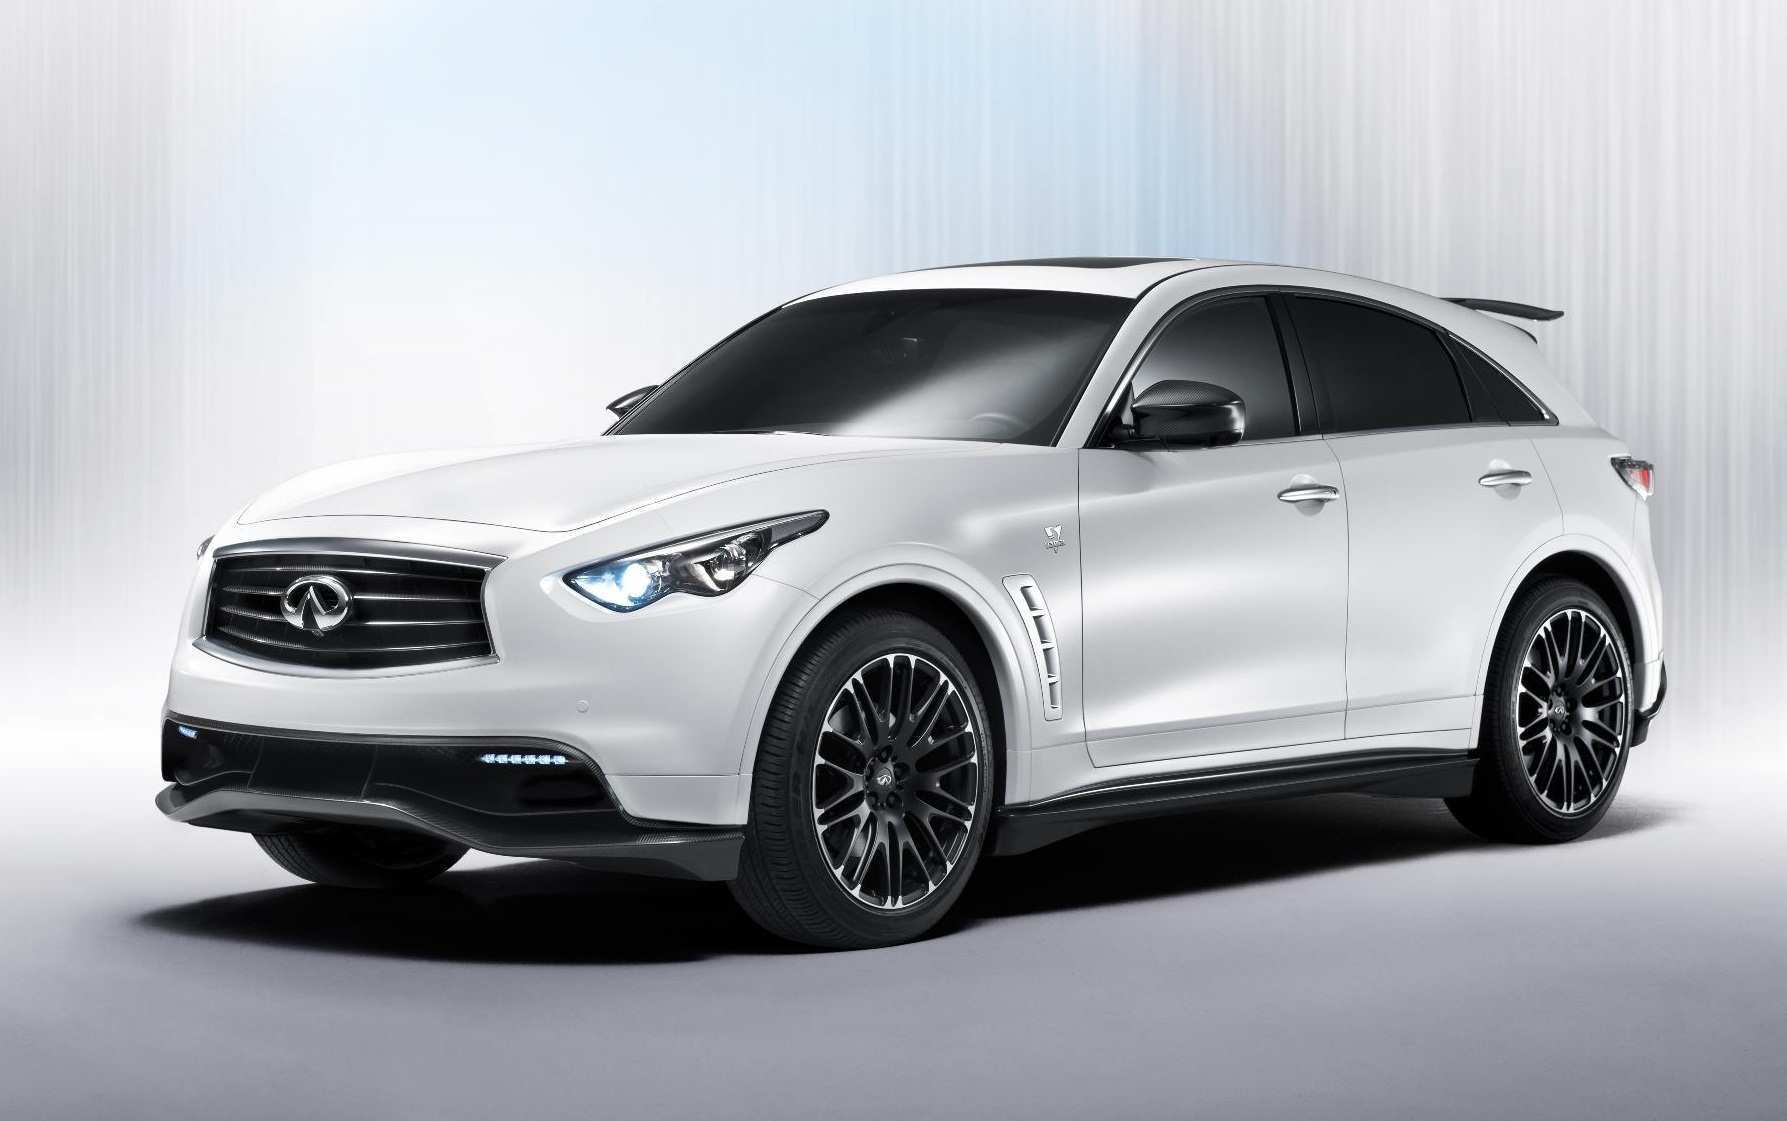 53 Best Review New Infiniti Fx35 2019 Rumor Performance with New Infiniti Fx35 2019 Rumor